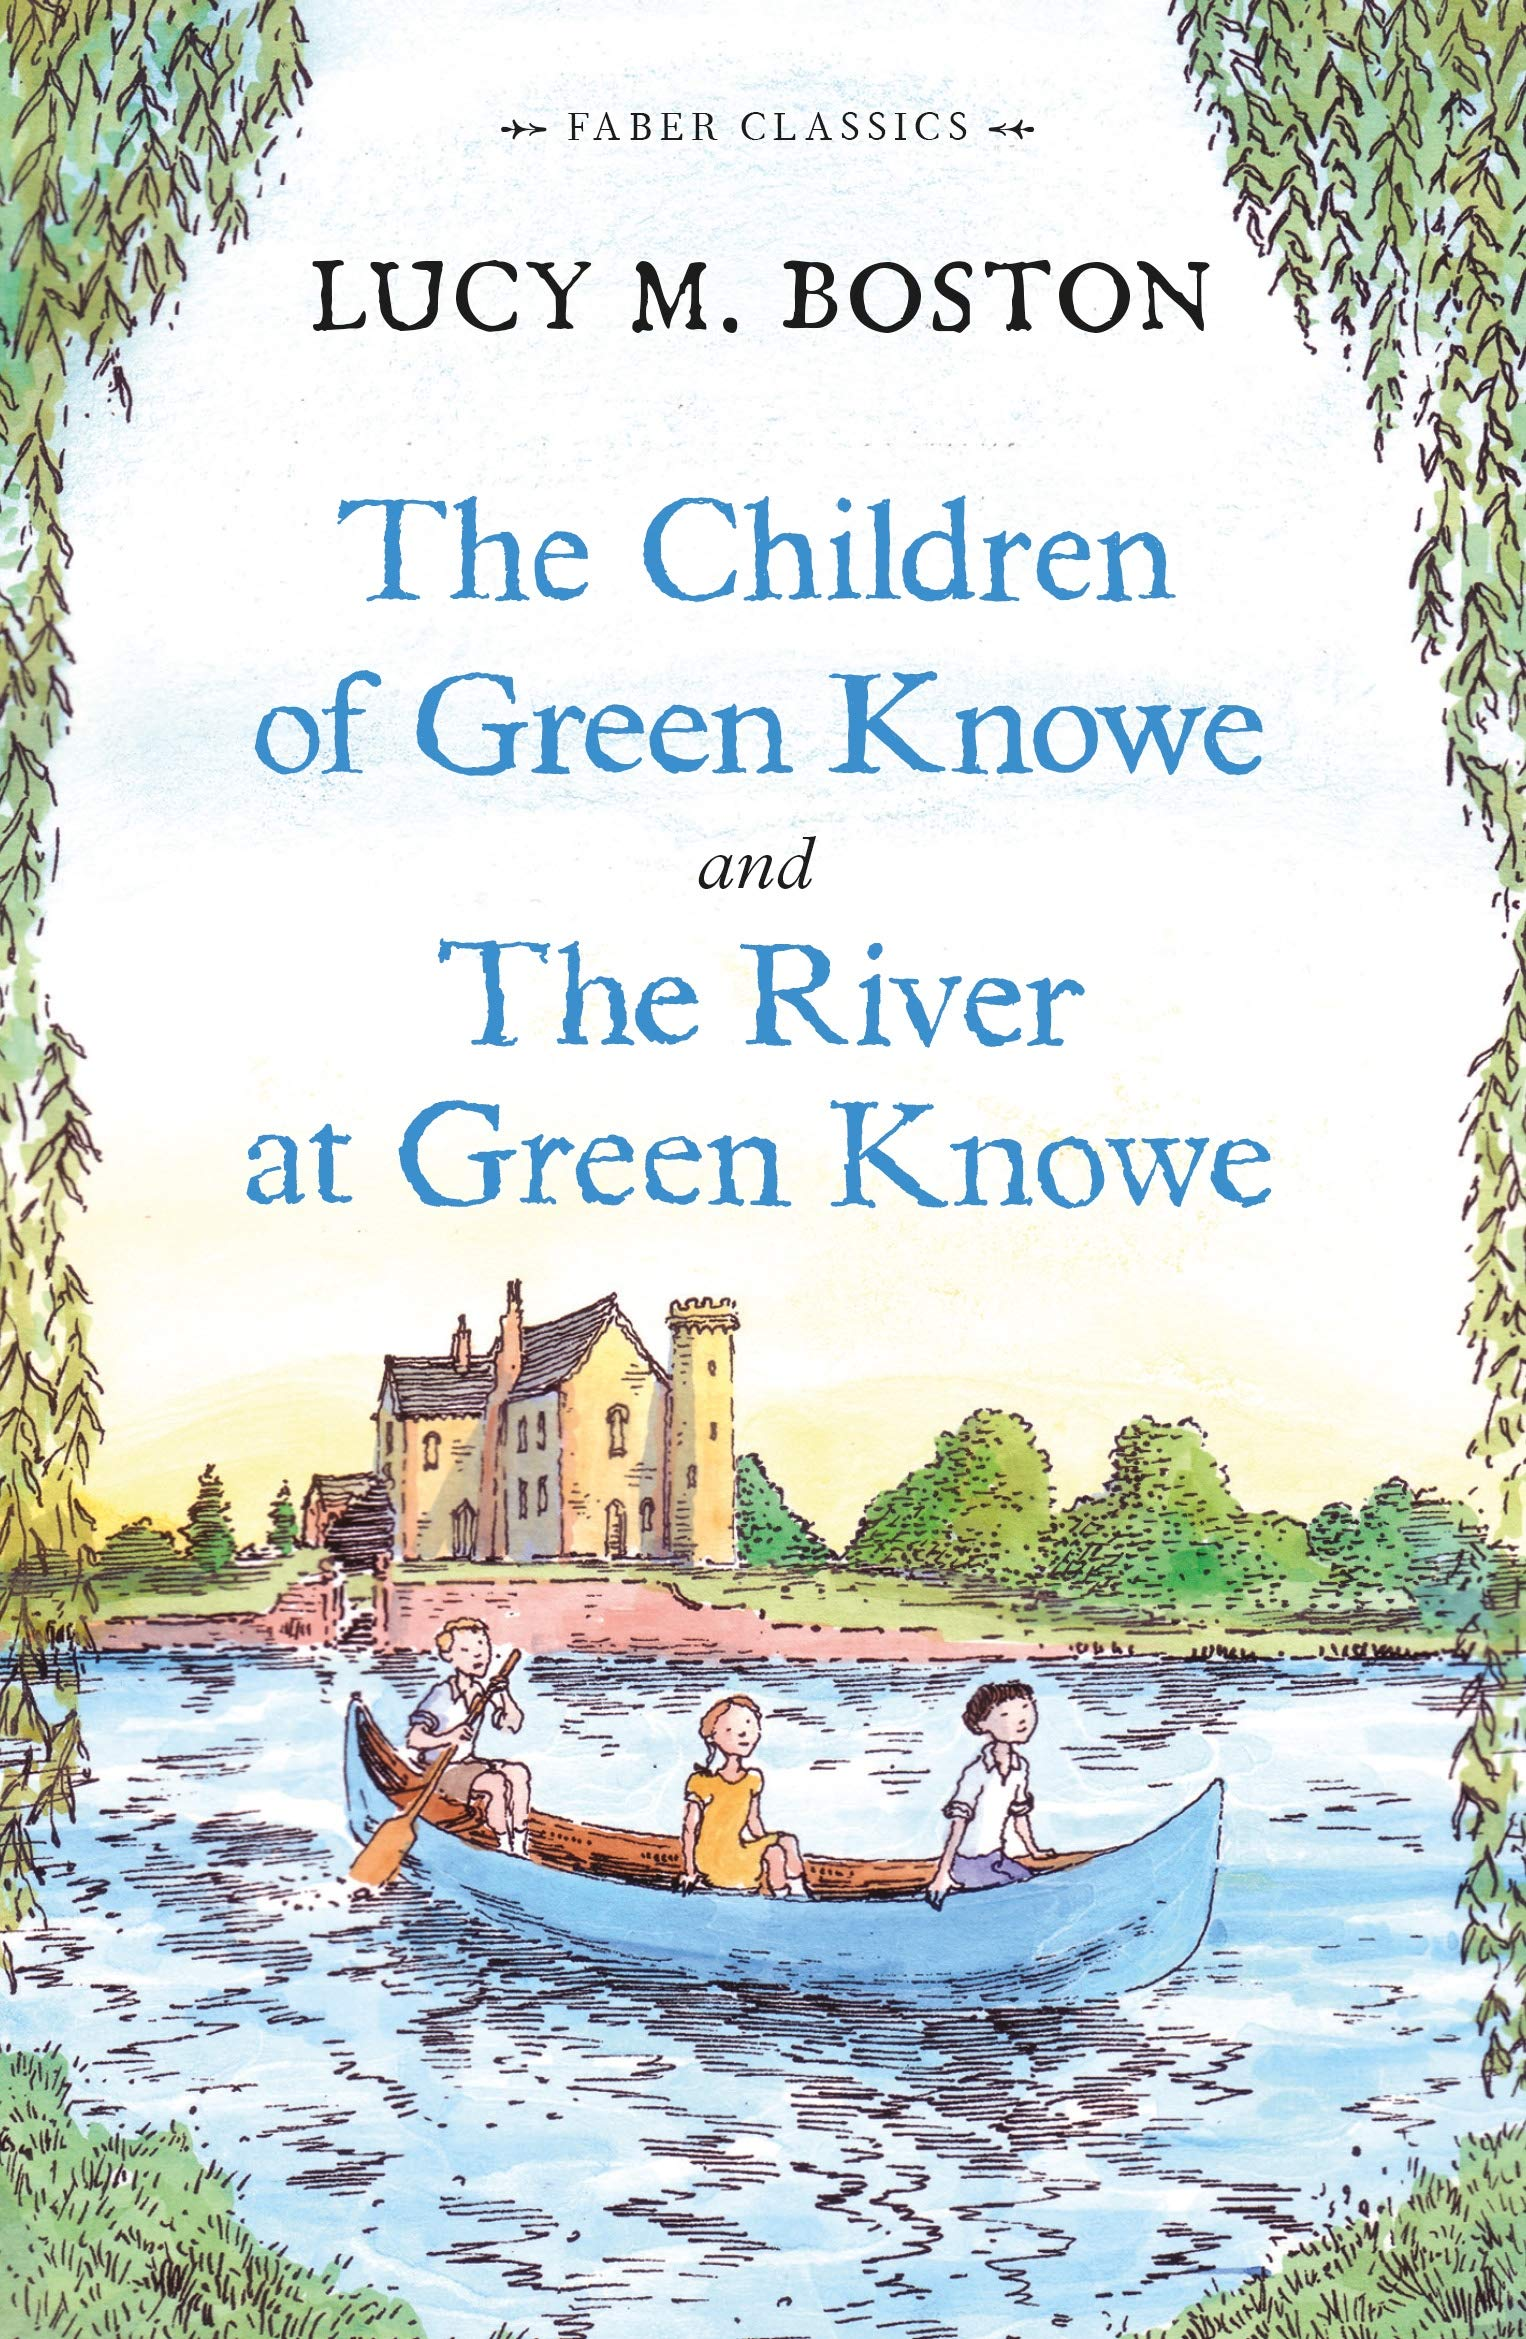 Download The Children of Green Knowe Collection (Faber Classics) PDF